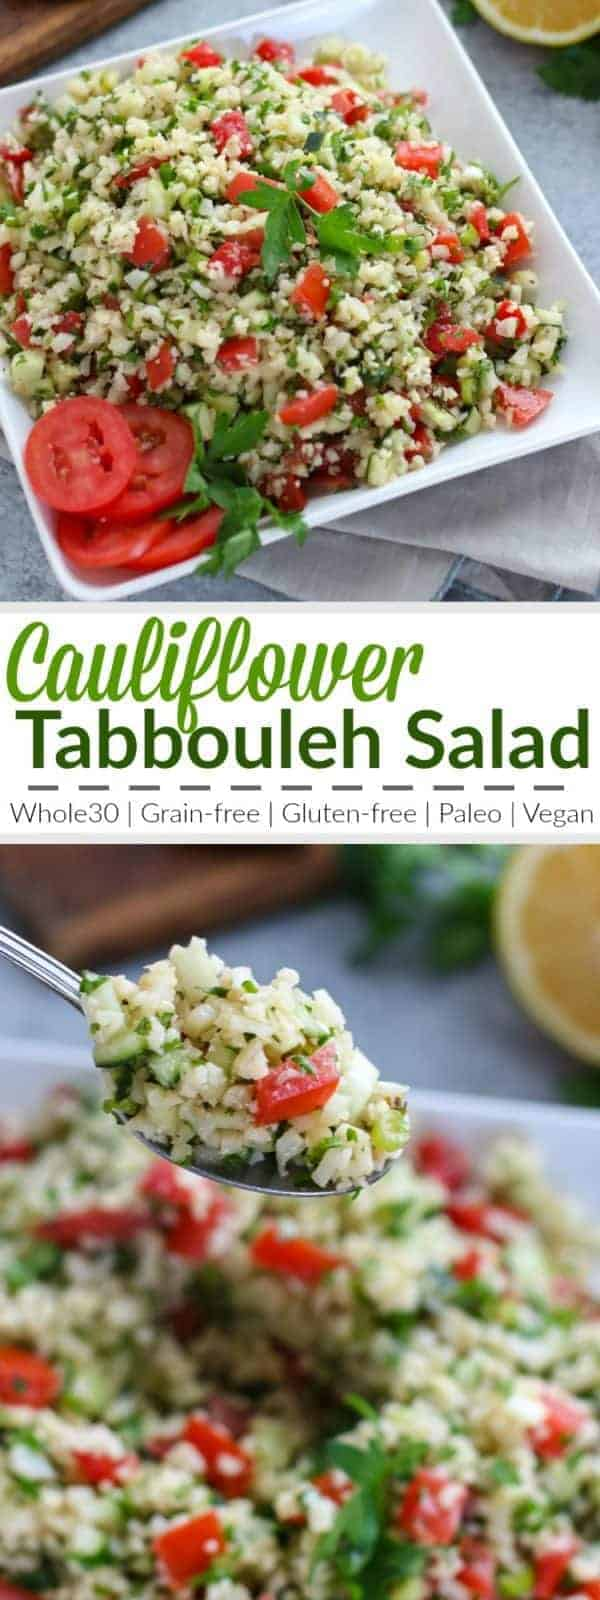 pinterest image for Cauliflower Tabbouleh Salad